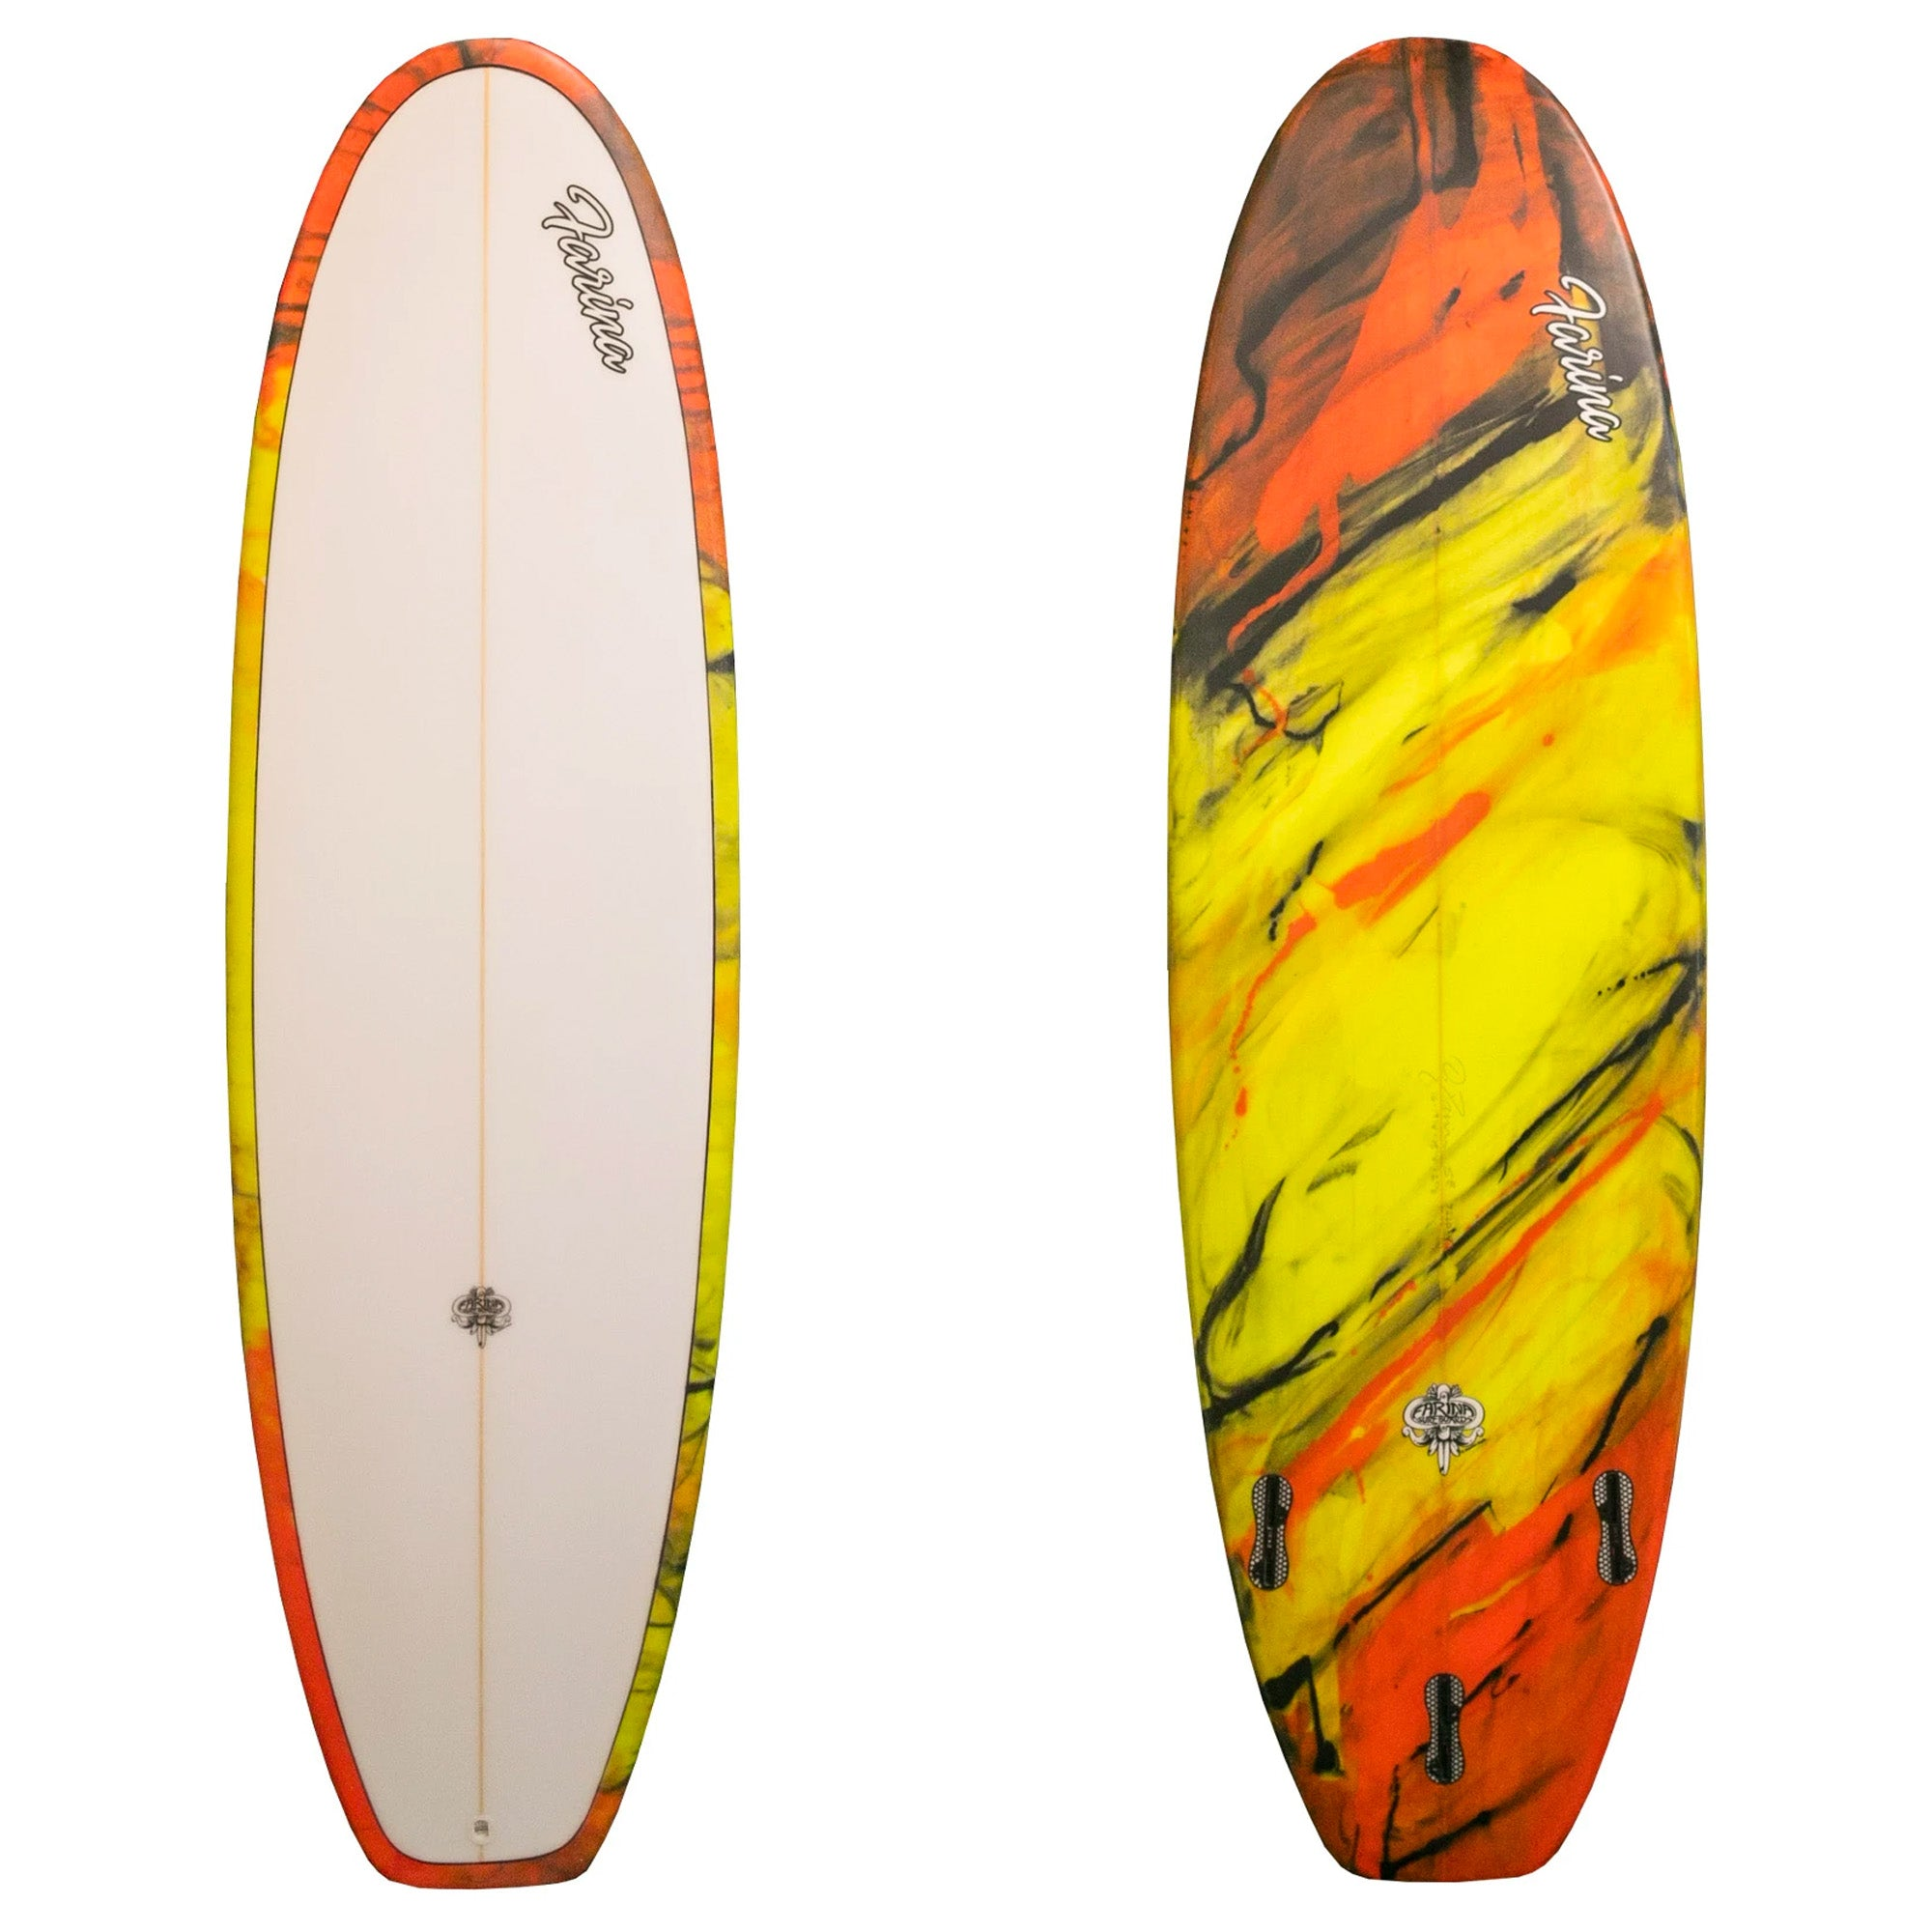 Farina Handcrafted 5'8 Blunt Nose Surfboard